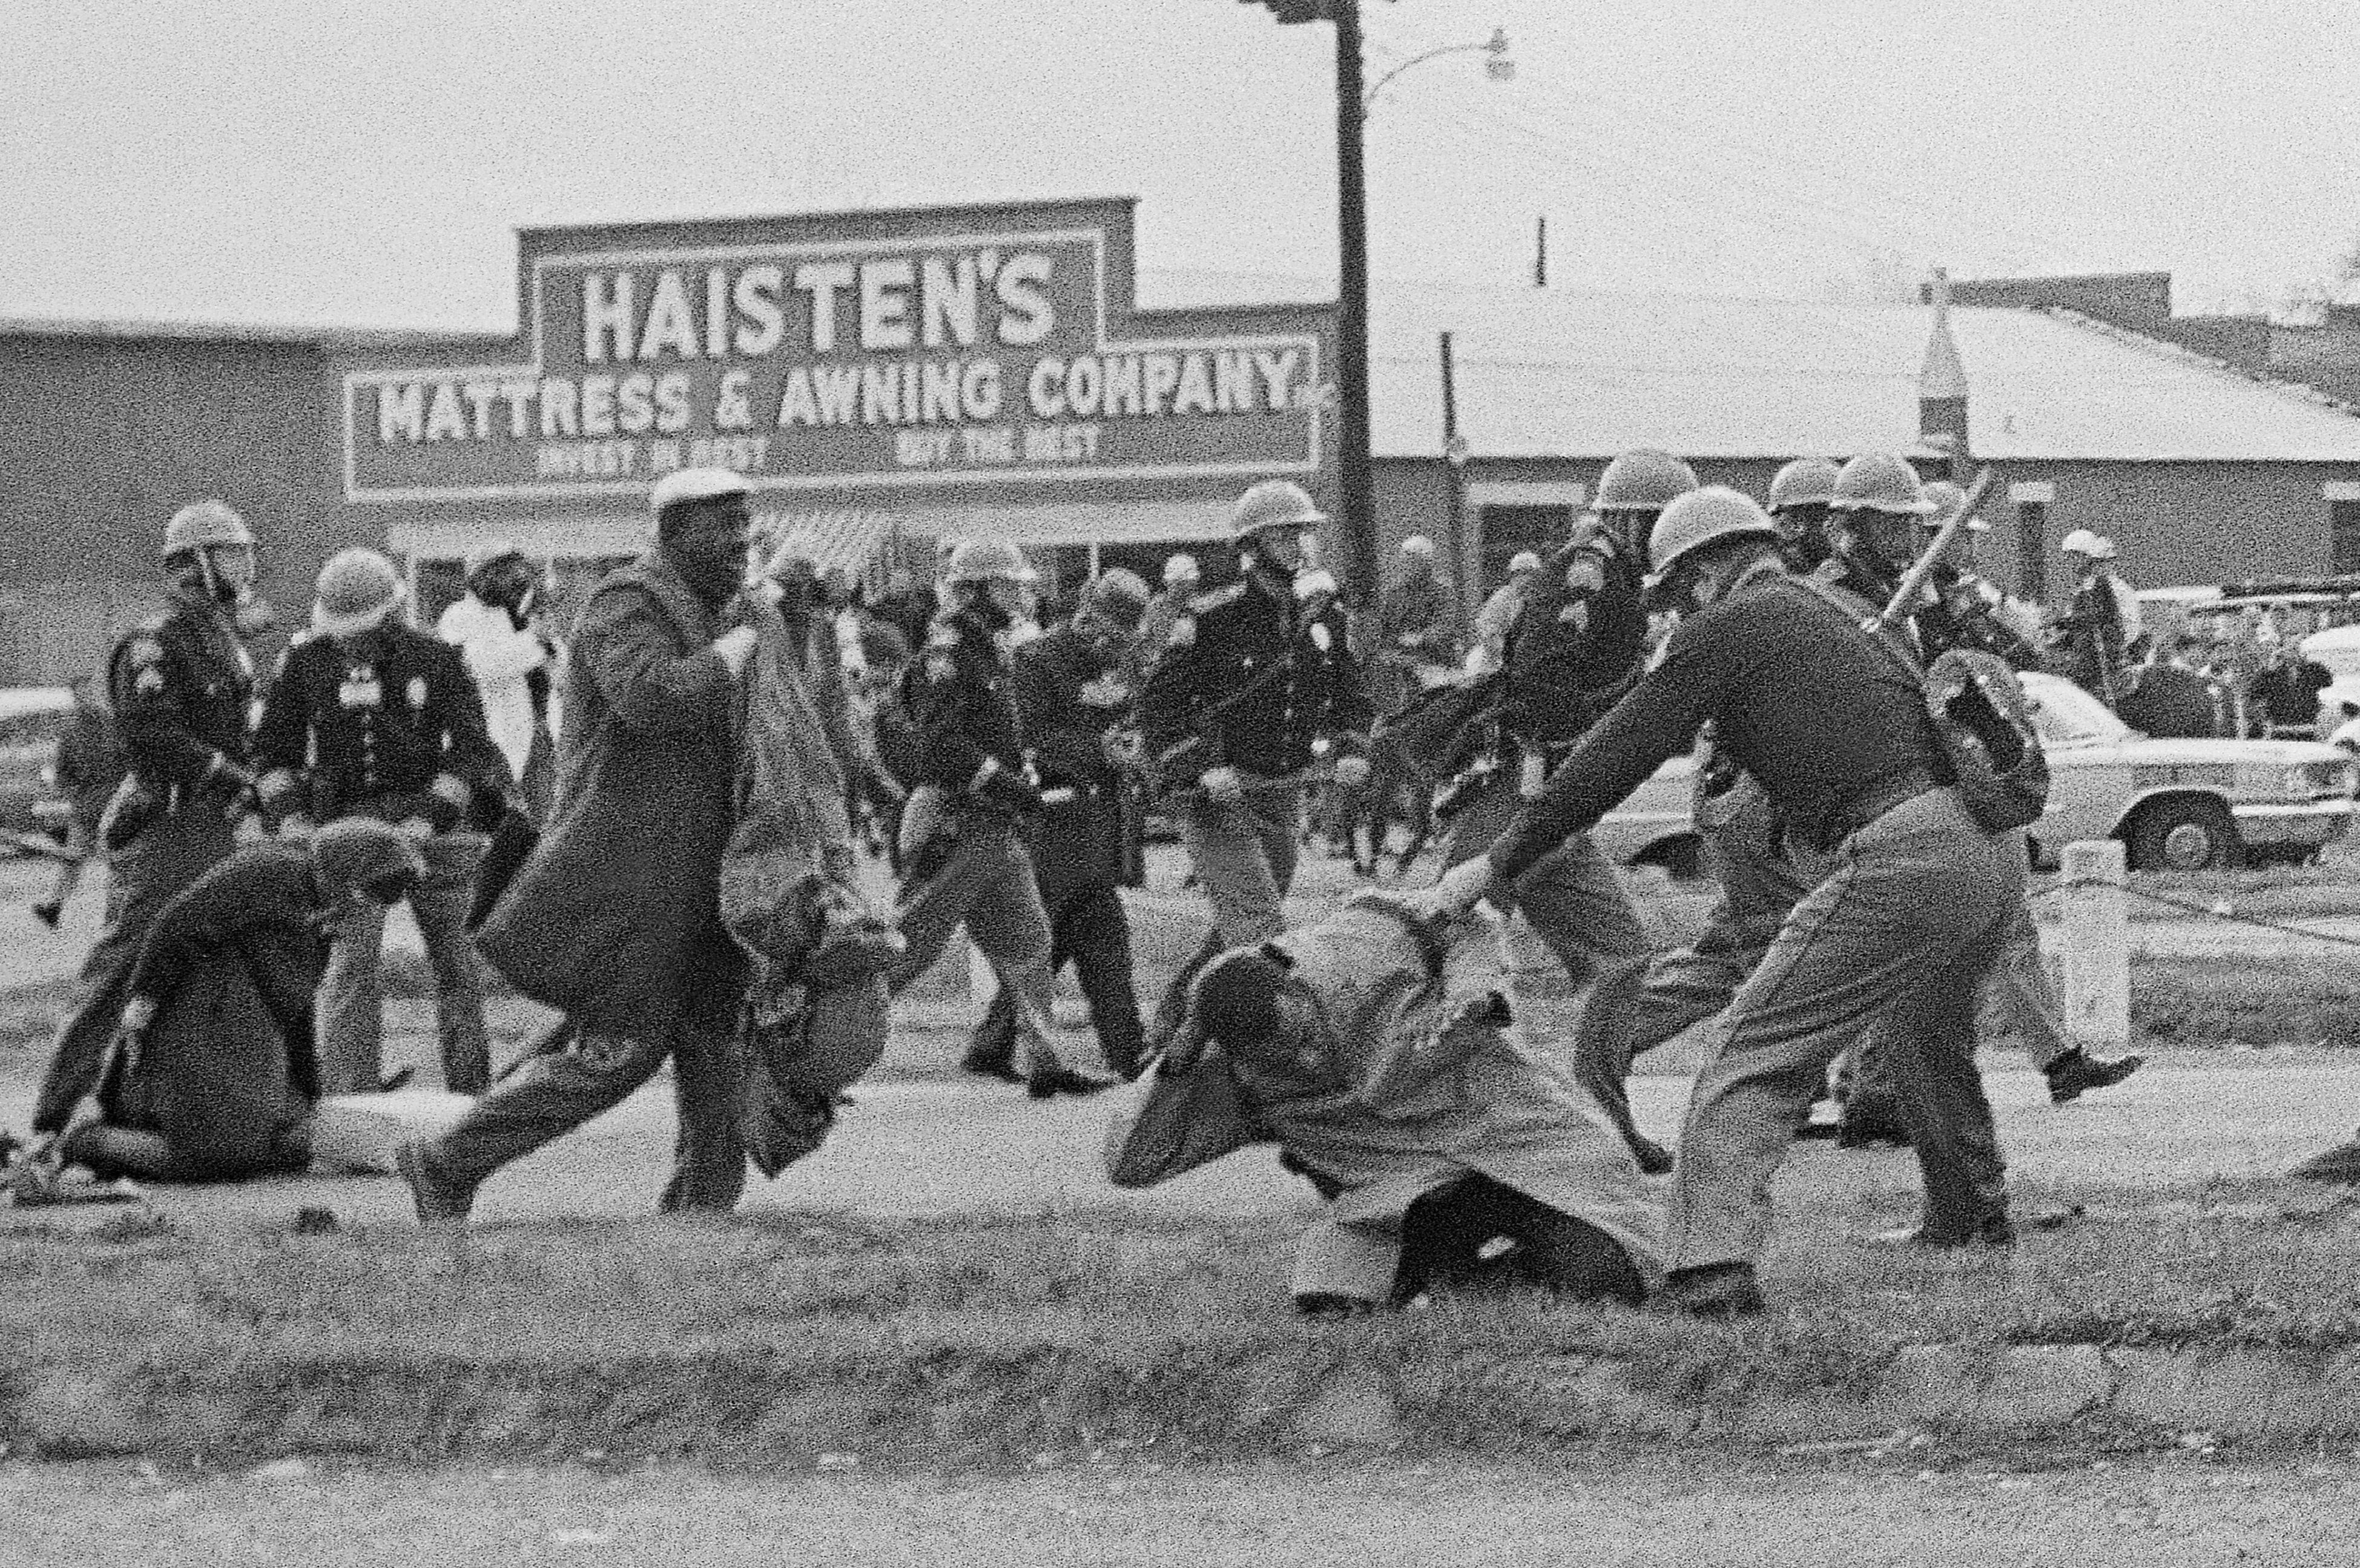 FILE - In this March 7, 1965, file photo, a state trooper swings a billy club at John Lewis, right foreground, chairman of the Student Nonviolent Coordinating Committee, to break up a civil rights voting march in Selma, Ala. Lewis sustained a fractured skull. Lewis, who carried the struggle against racial discrimination from Southern battlegrounds of the 1960s to the halls of Congress, died Friday, July 17, 2020. (AP Photo/File)